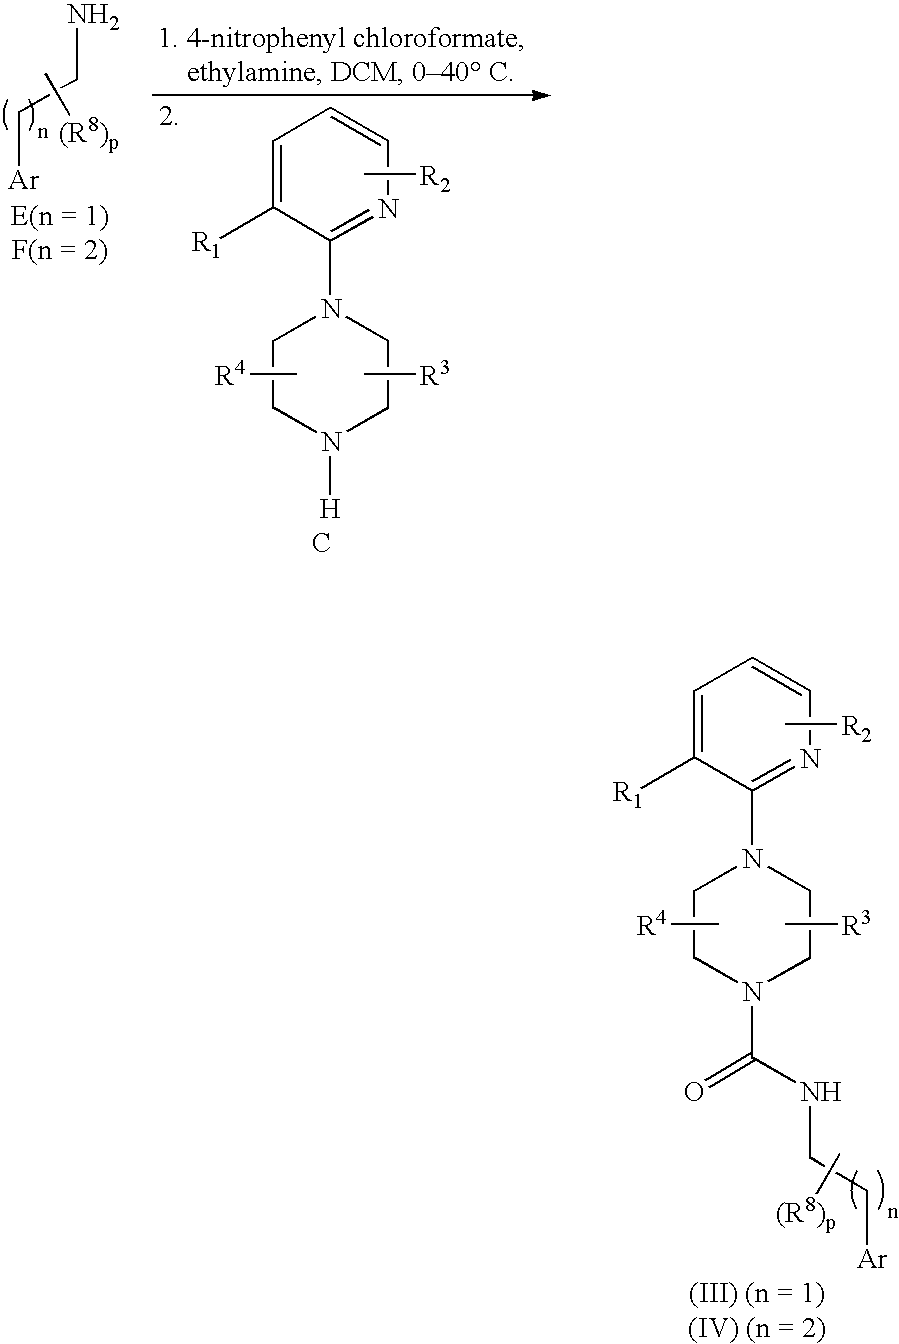 US20040006091A1 - Therapeutic agents useful for treating or